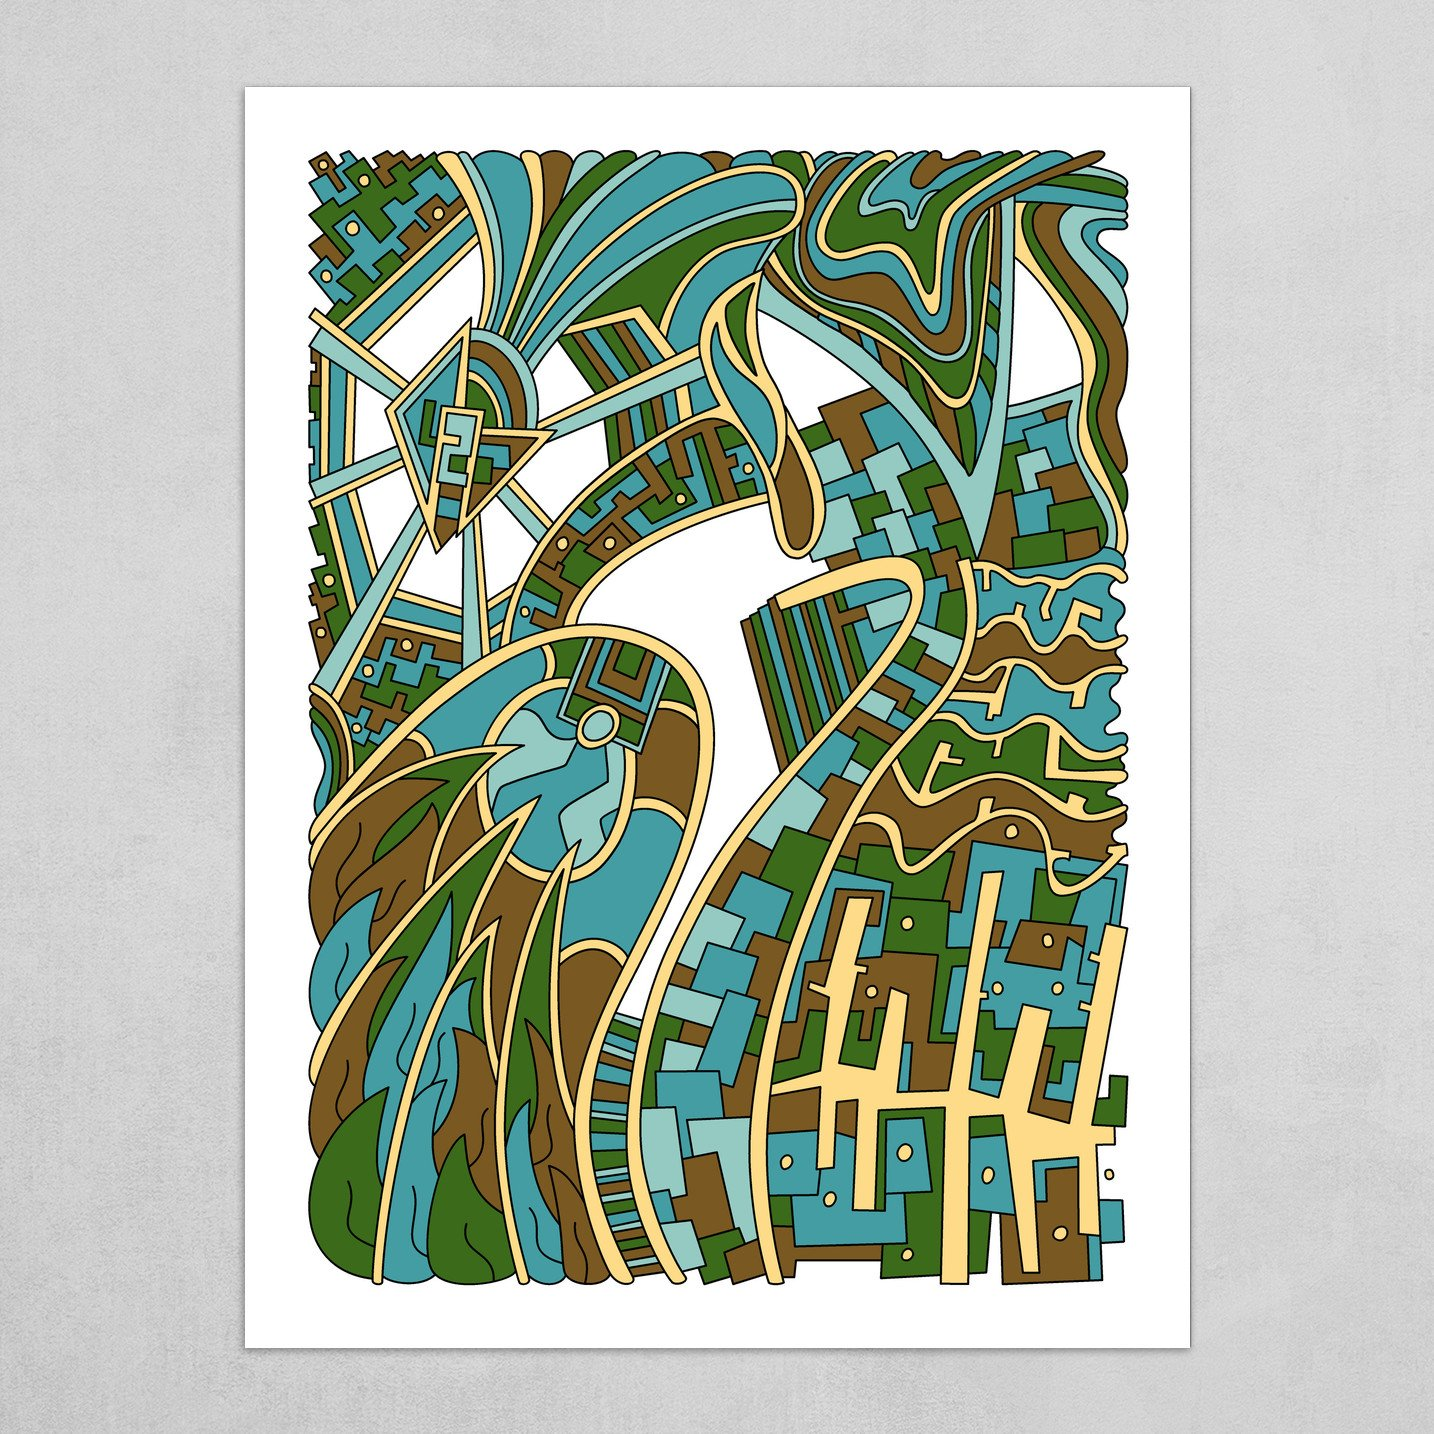 Wandering Abstract Line Art 42: Green